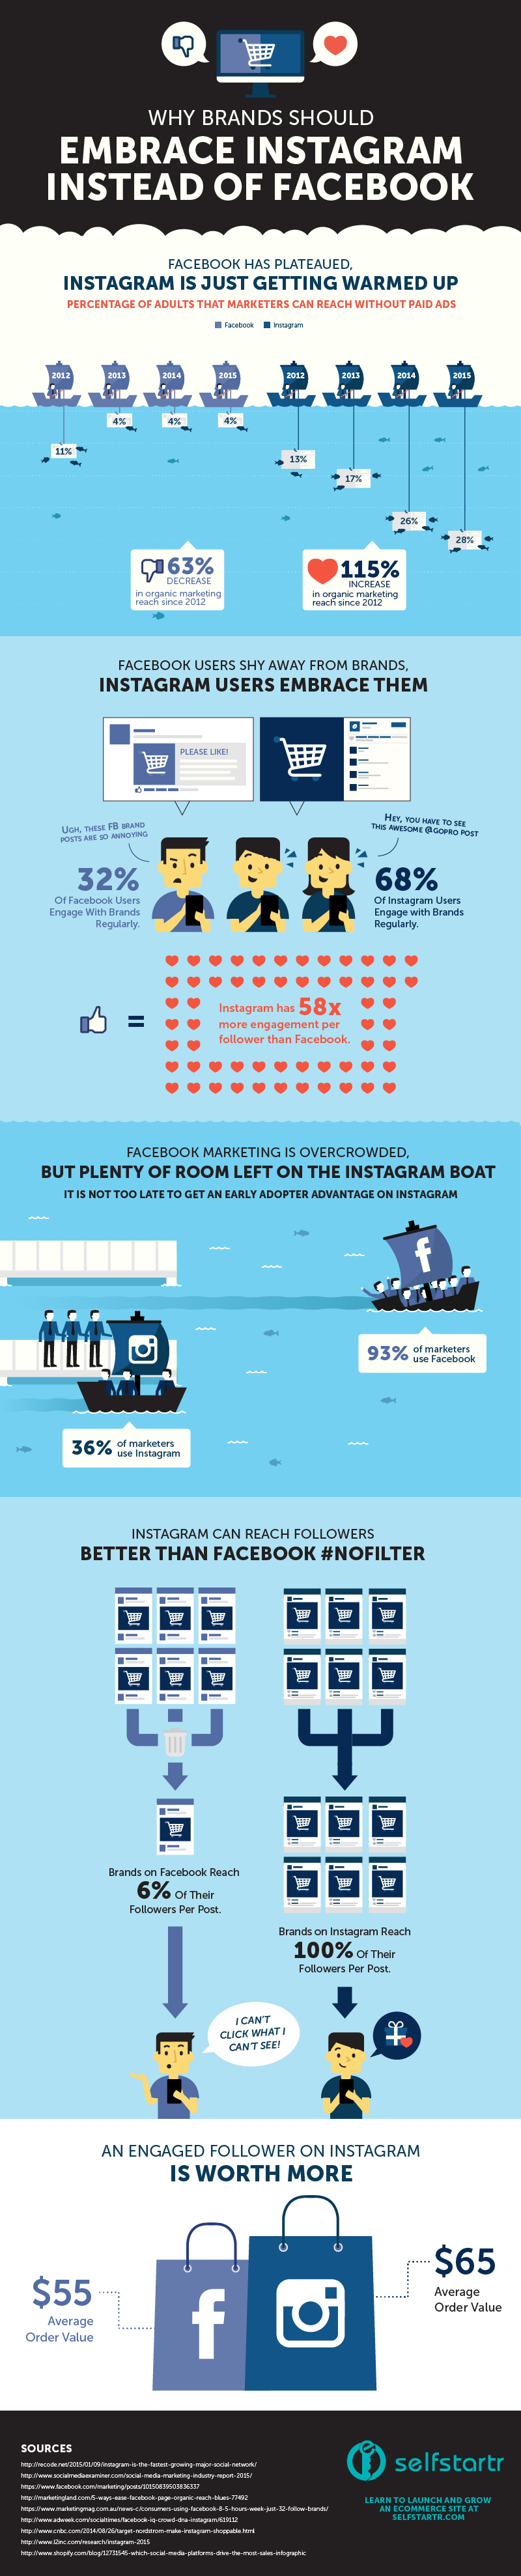 Instagram Infographic: Why Brands Should Embrace Instagram Instead of Facebook